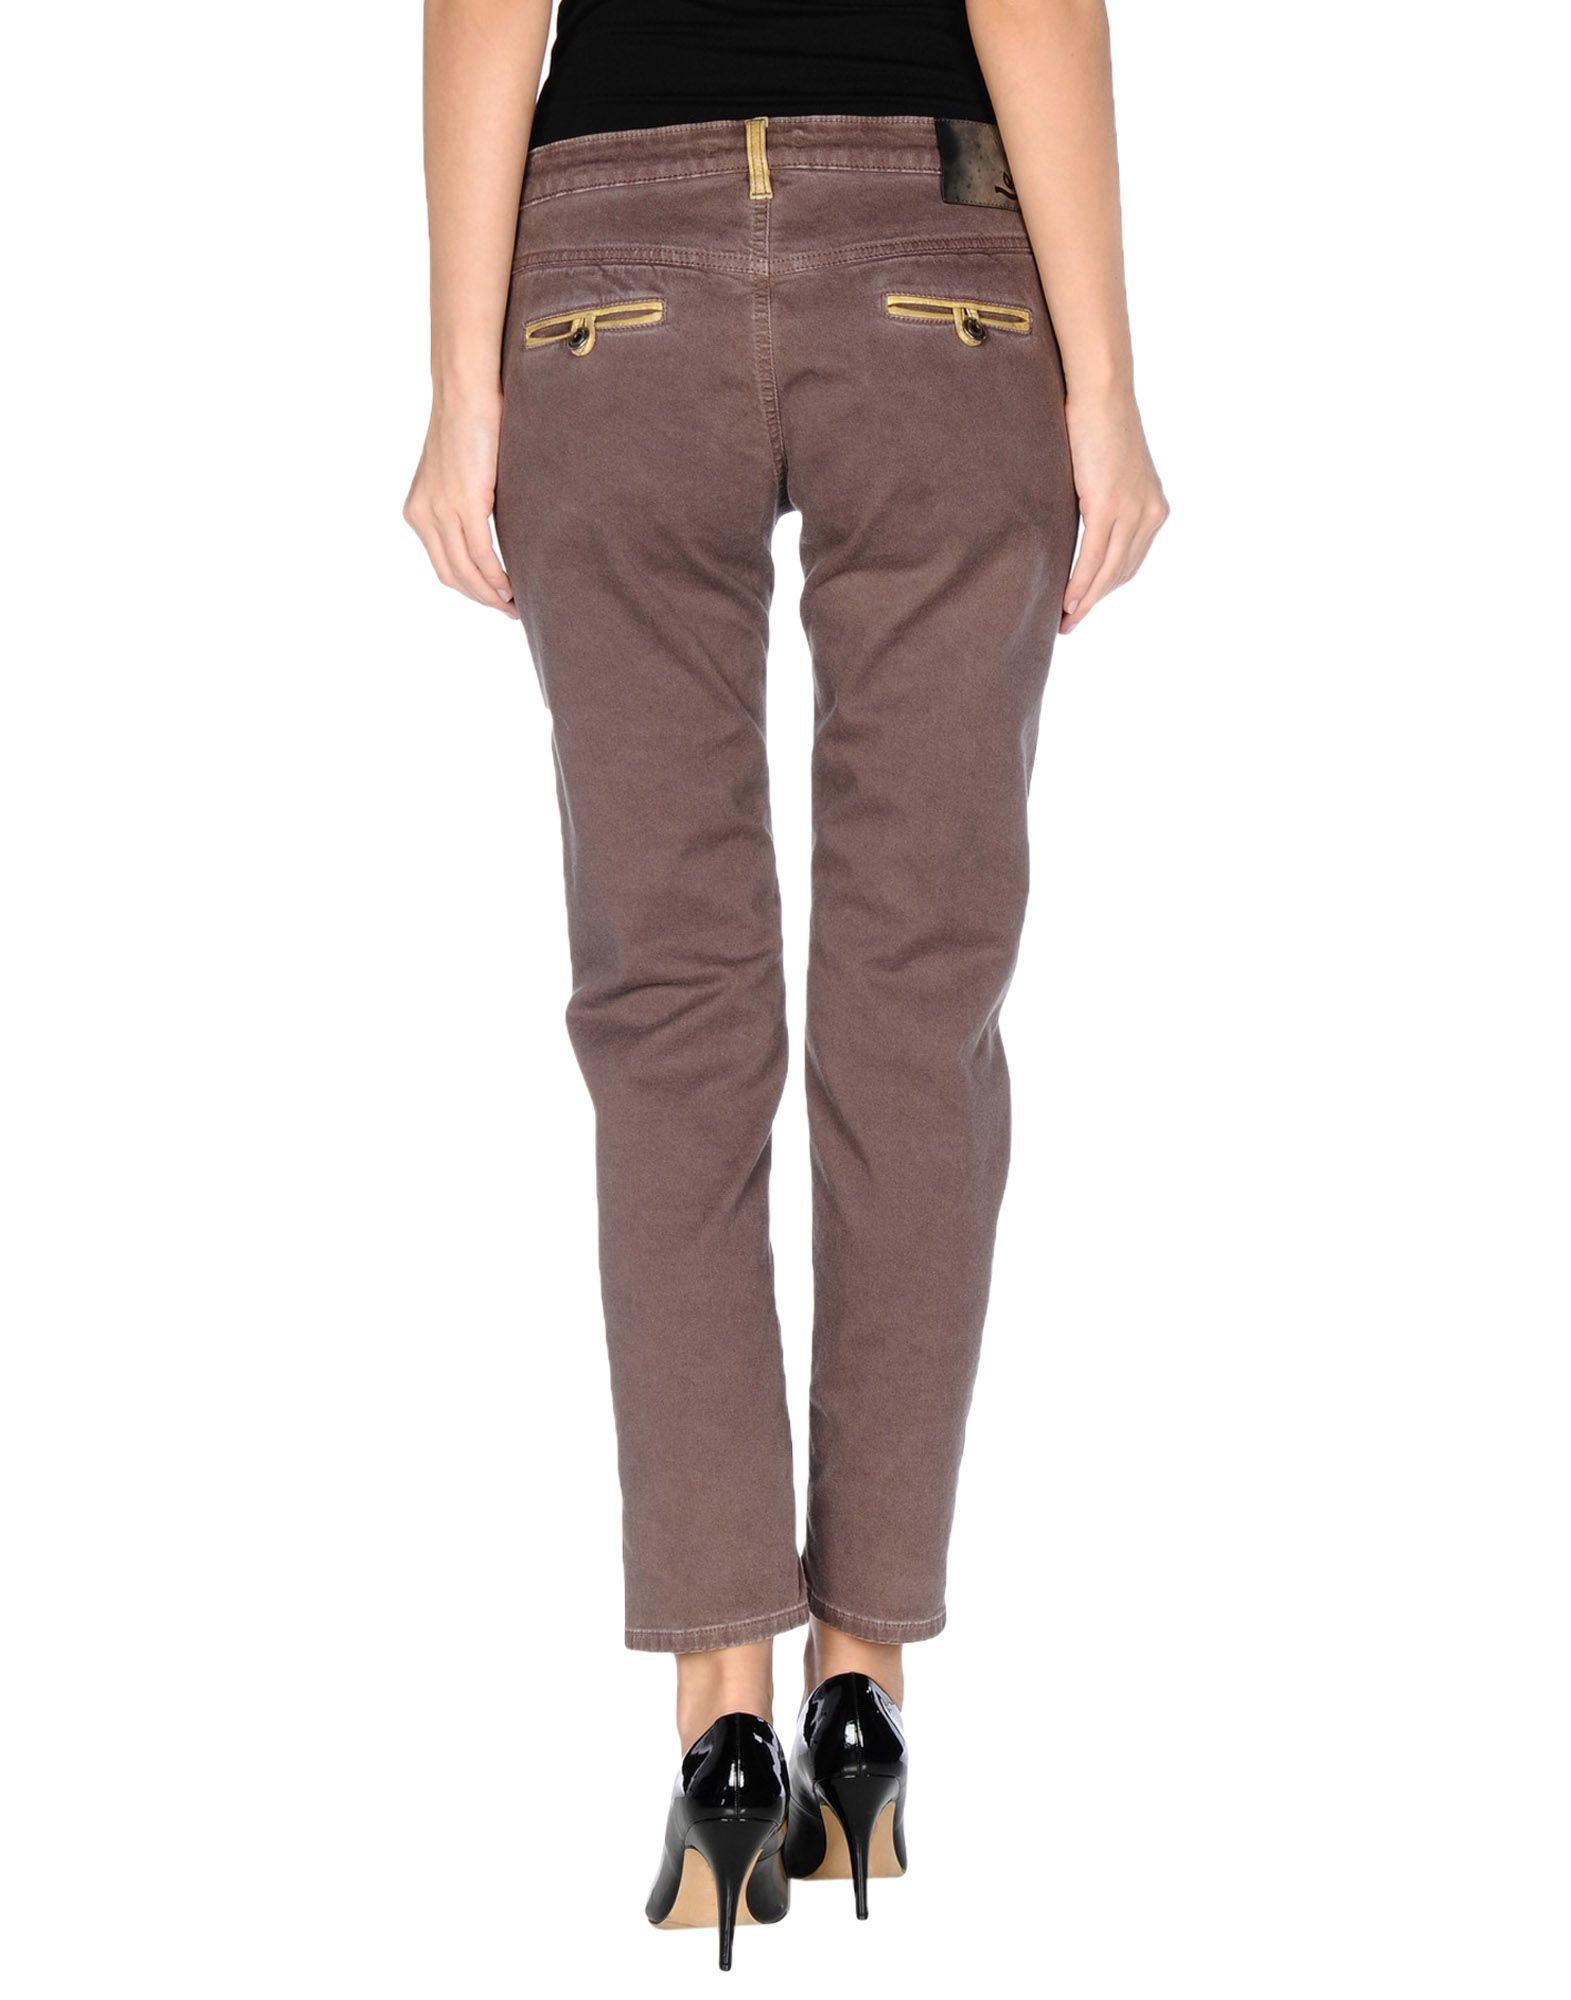 Light Brown Jeans Womens